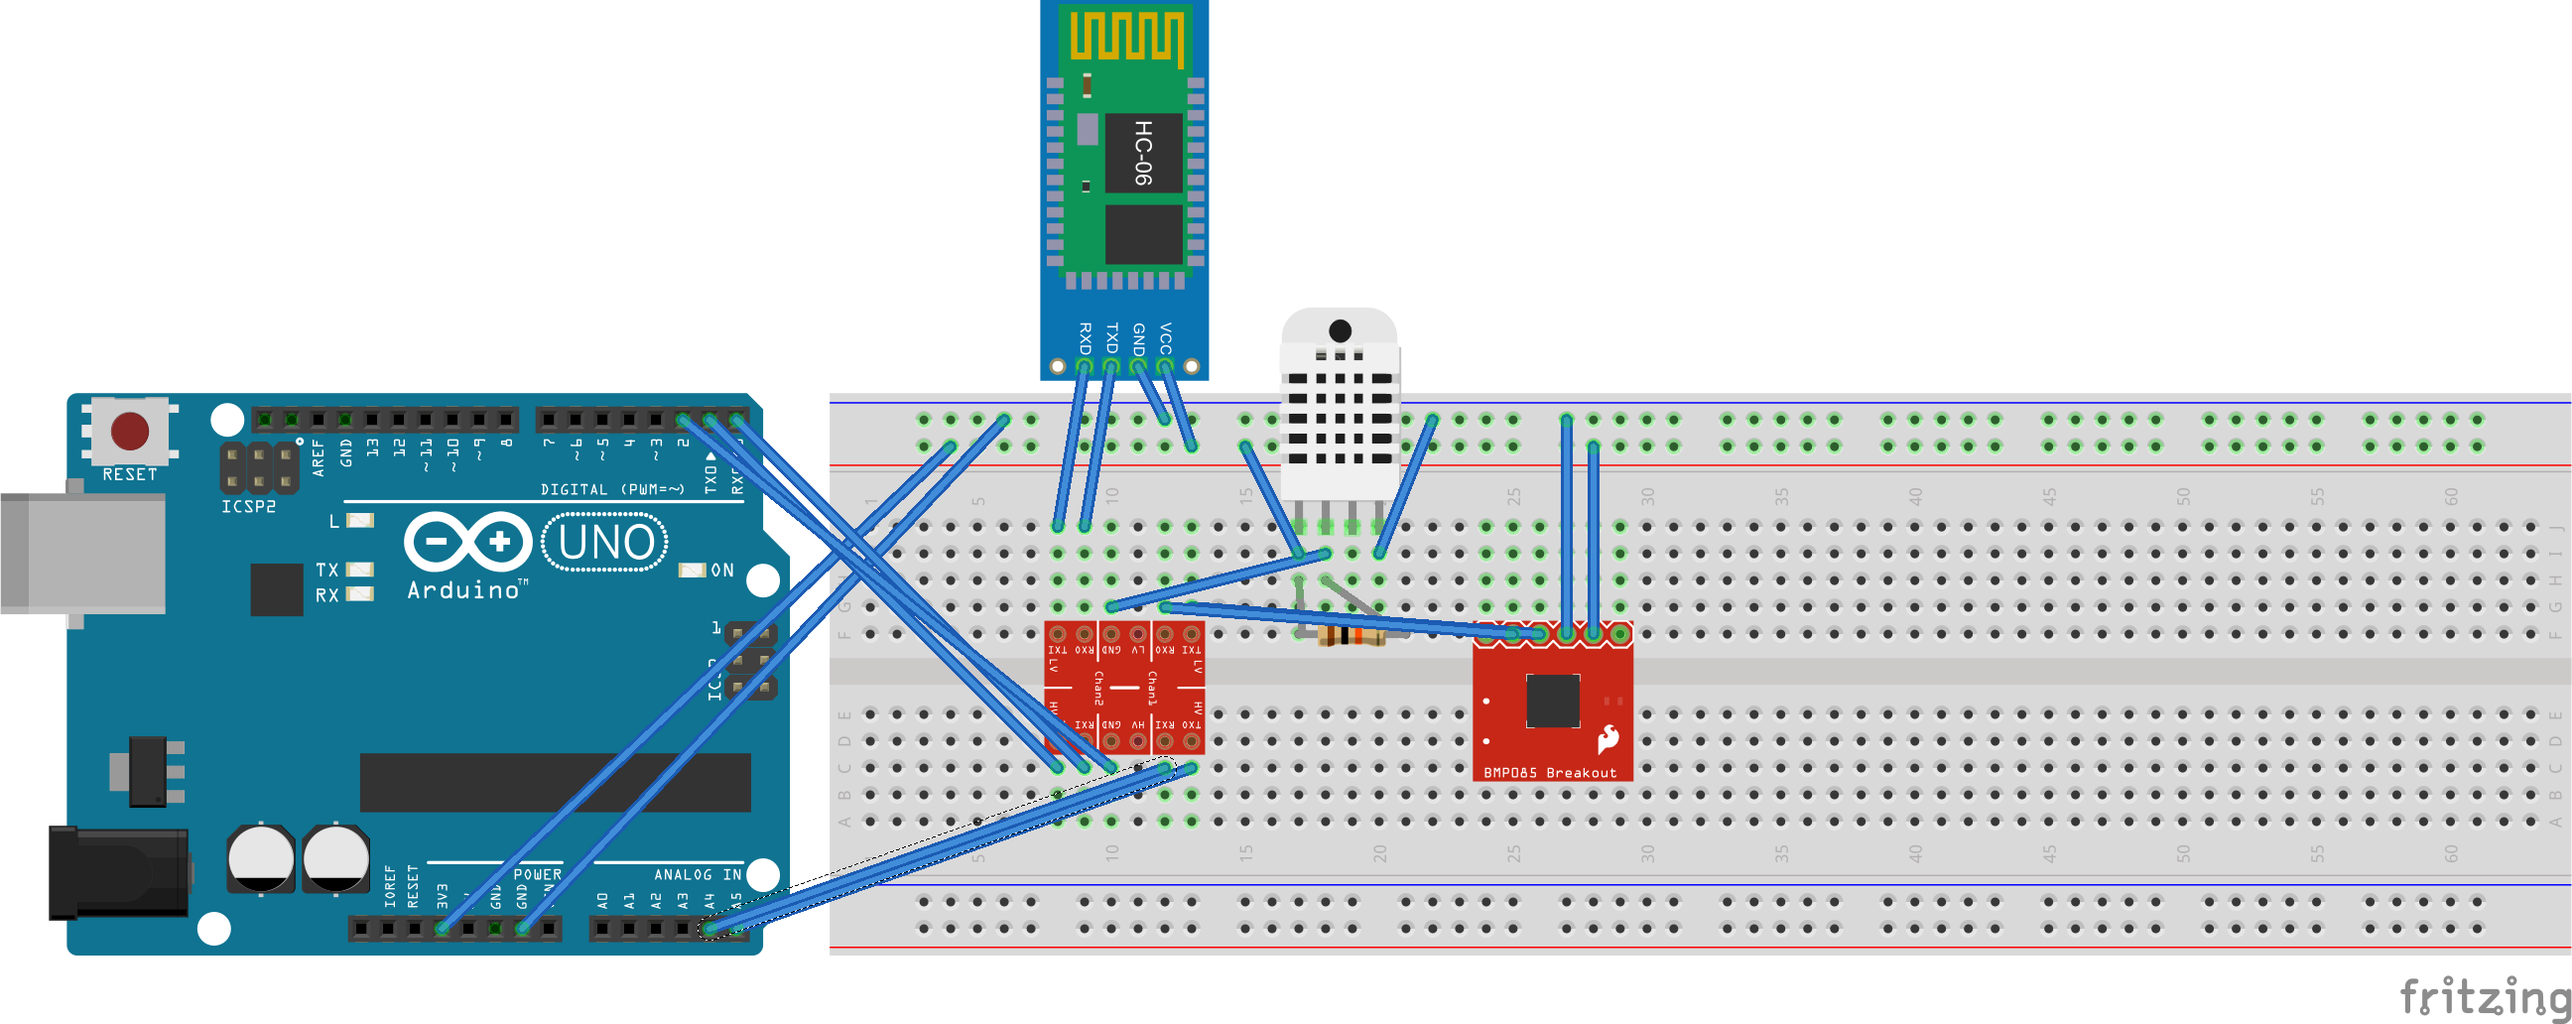 How to Wire the Componets on a 5V Microcontroler Board